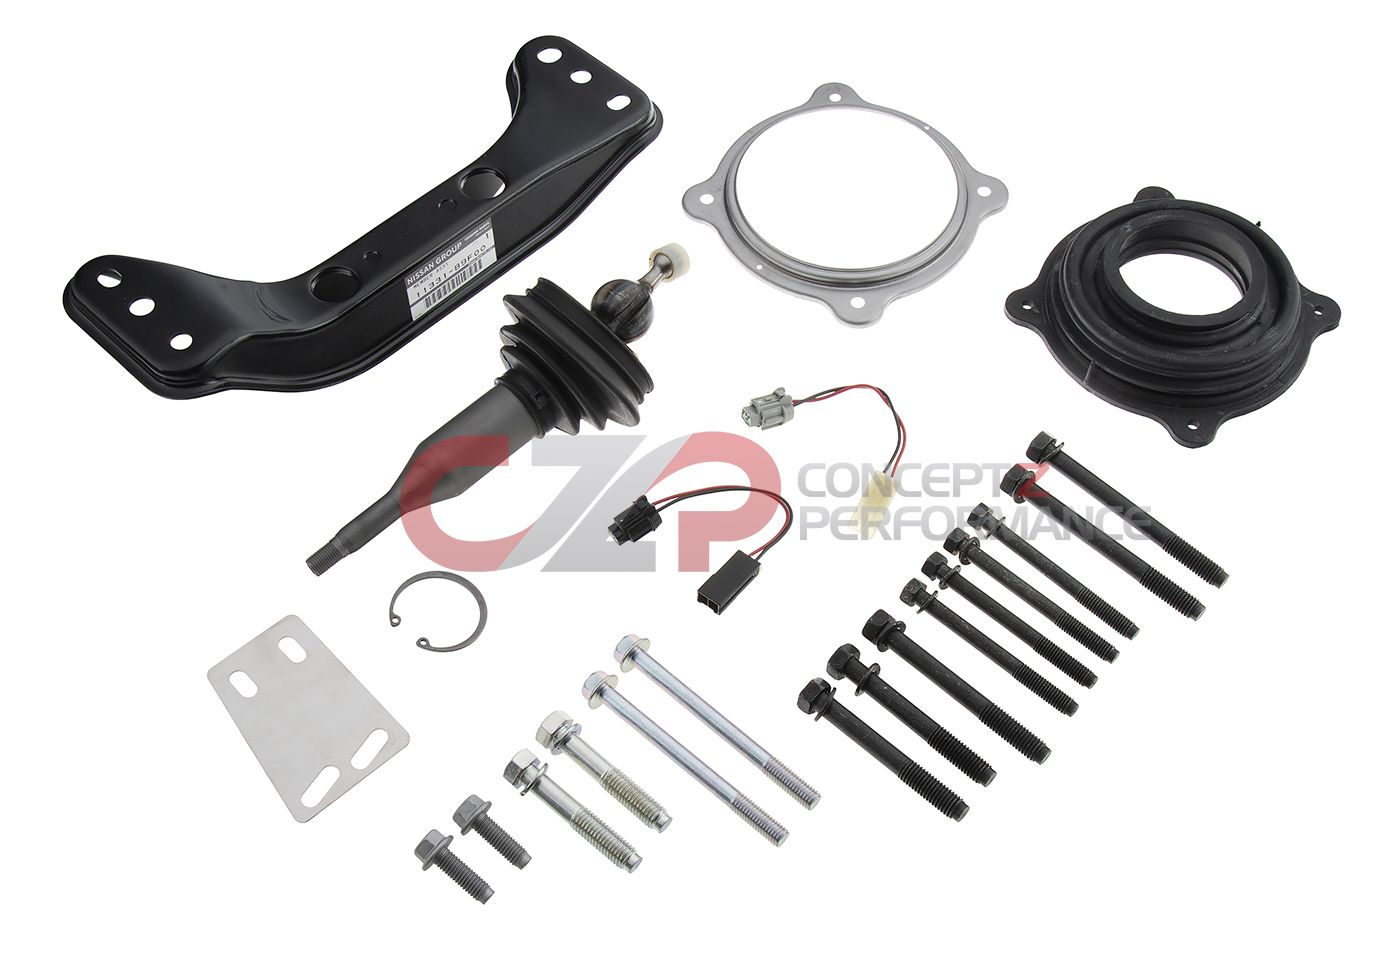 Nismo Reinforced Cross 6-Speed Transmission Mounting Kit - Nissan 240SX / 180SX S13(w/o ABS) / S14 / S15 SR20DE / SR20DET